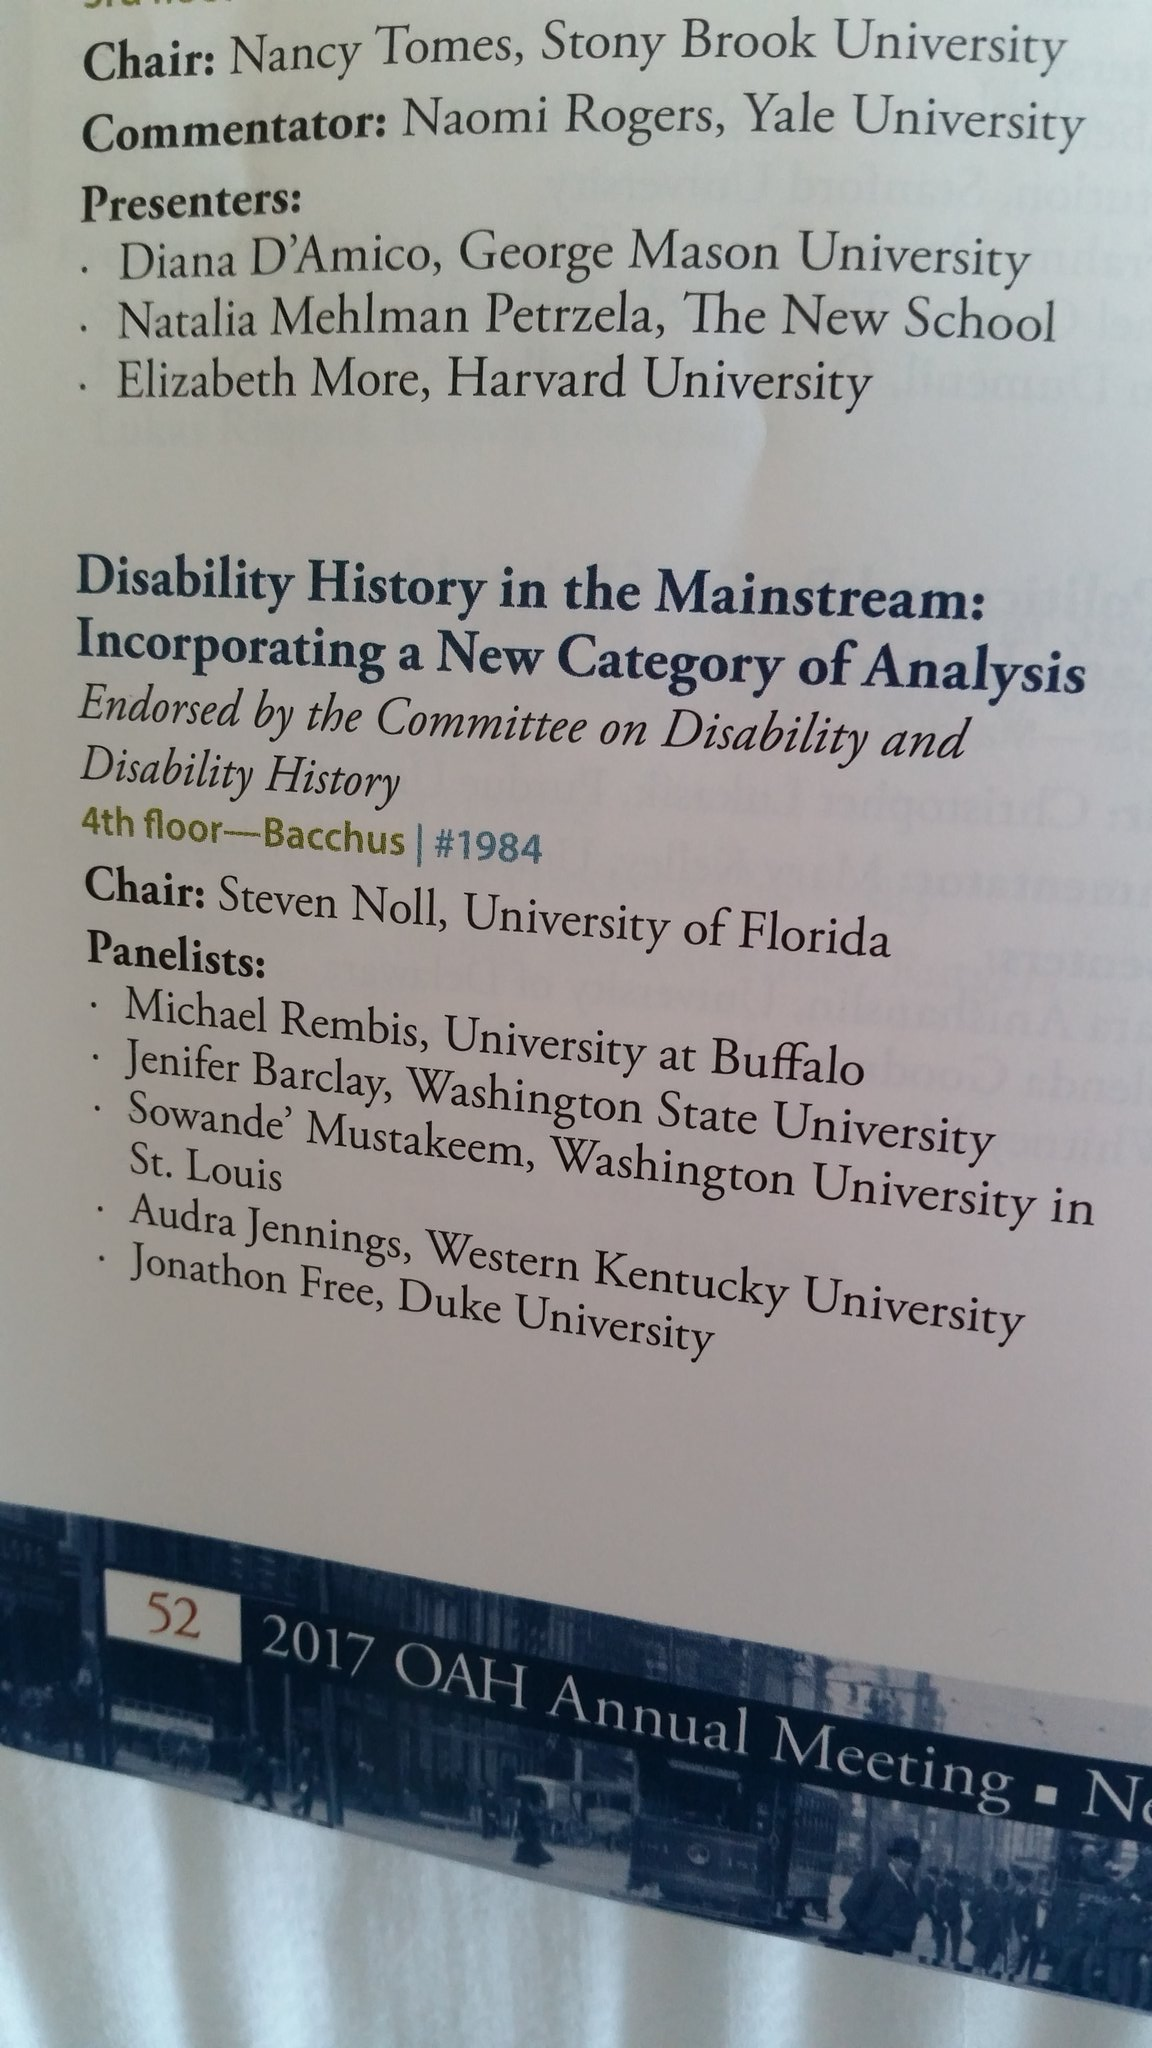 "Next up is ""Disability History in the Mainstream: incorporating a new category of analysis"" #OAH17 #p1984 https://t.co/R58unDnUuH"